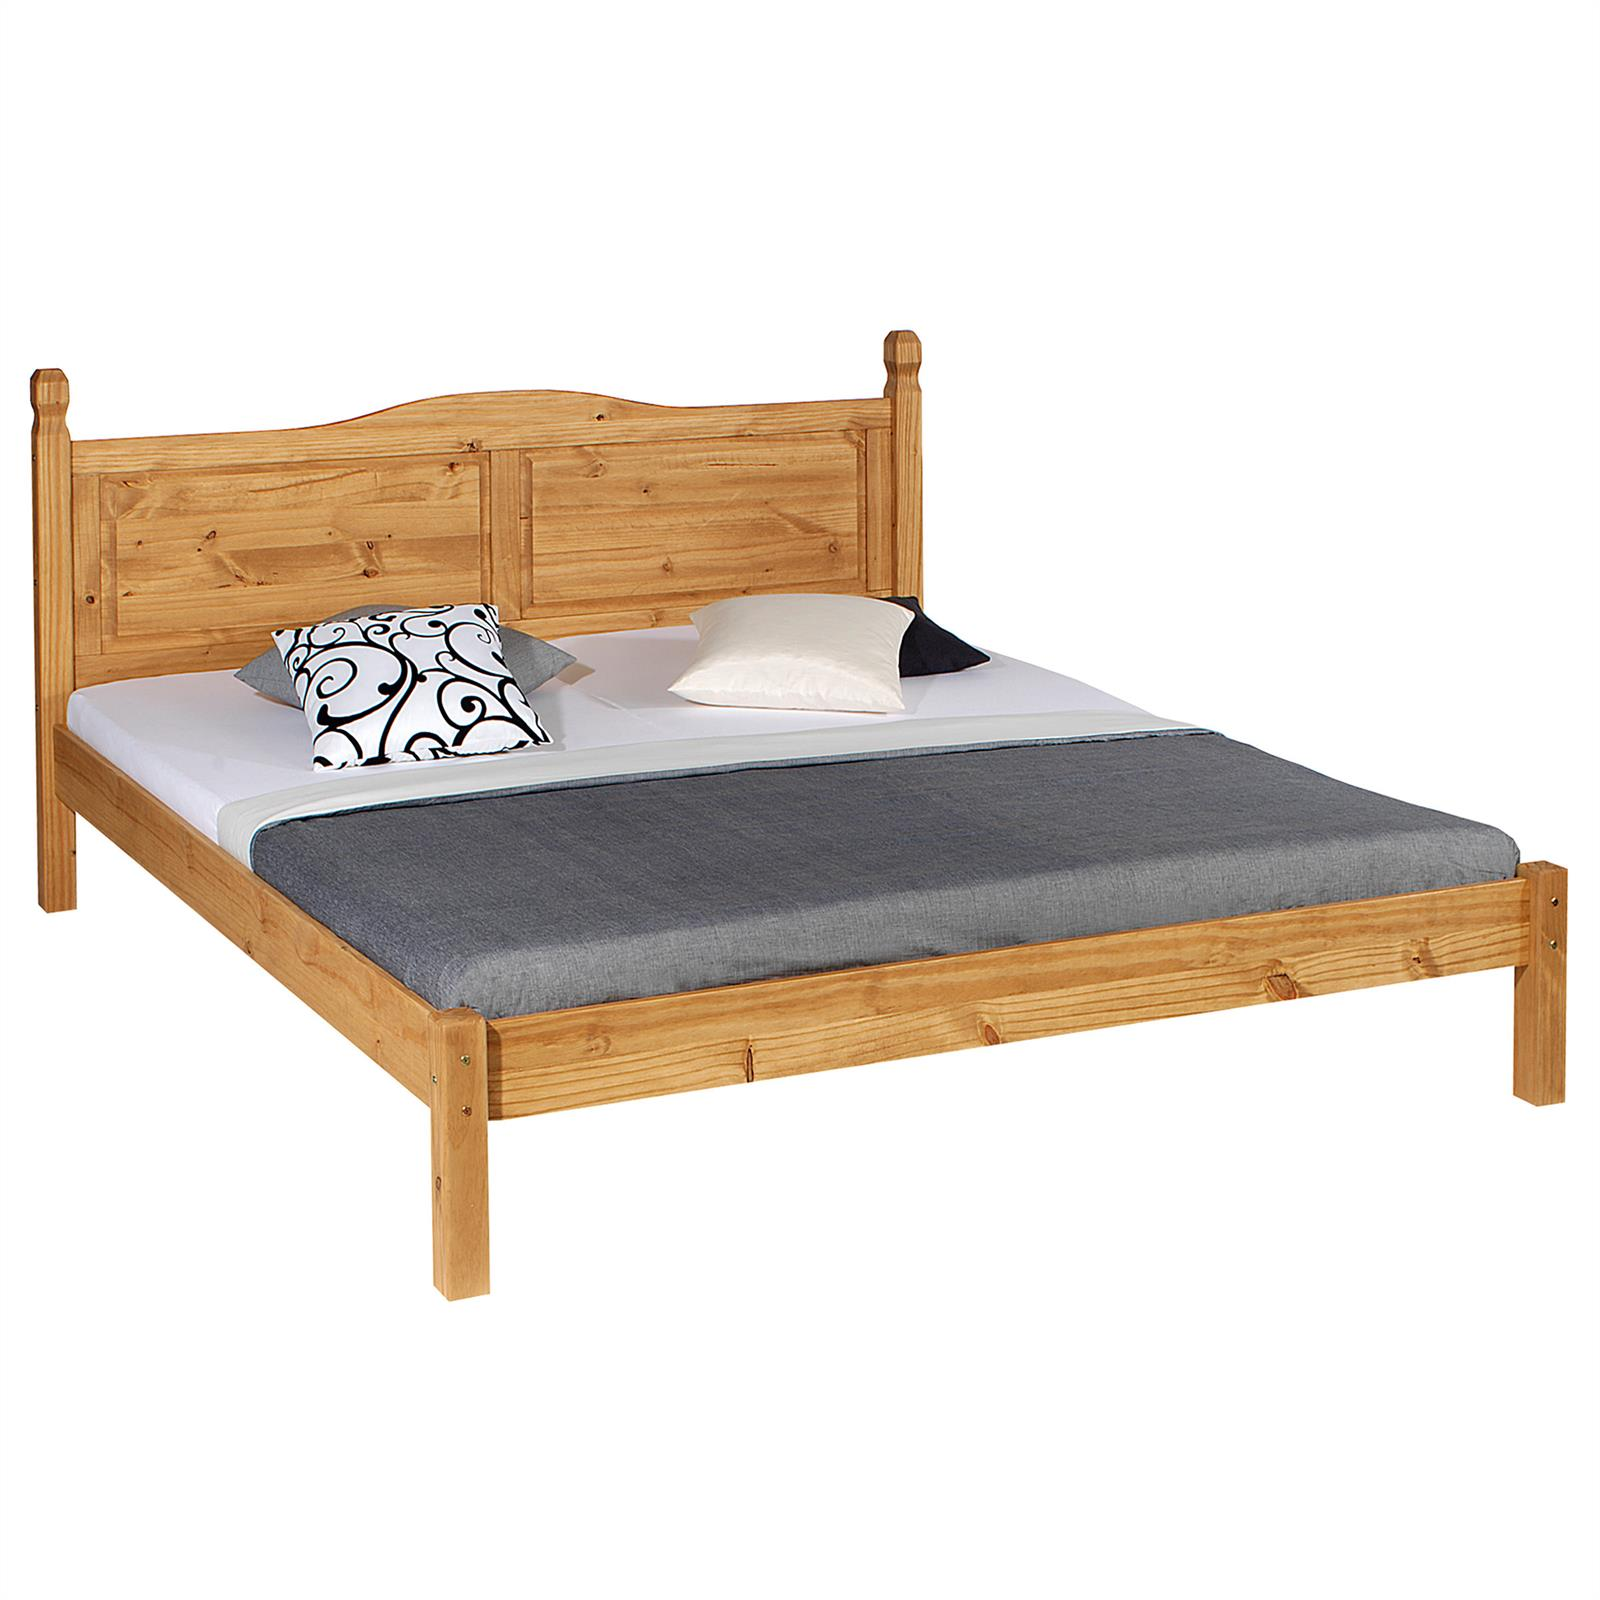 doppelbett holzbett landhausbett massivholzbett mexico 2 gr en kiefer massiv ebay. Black Bedroom Furniture Sets. Home Design Ideas